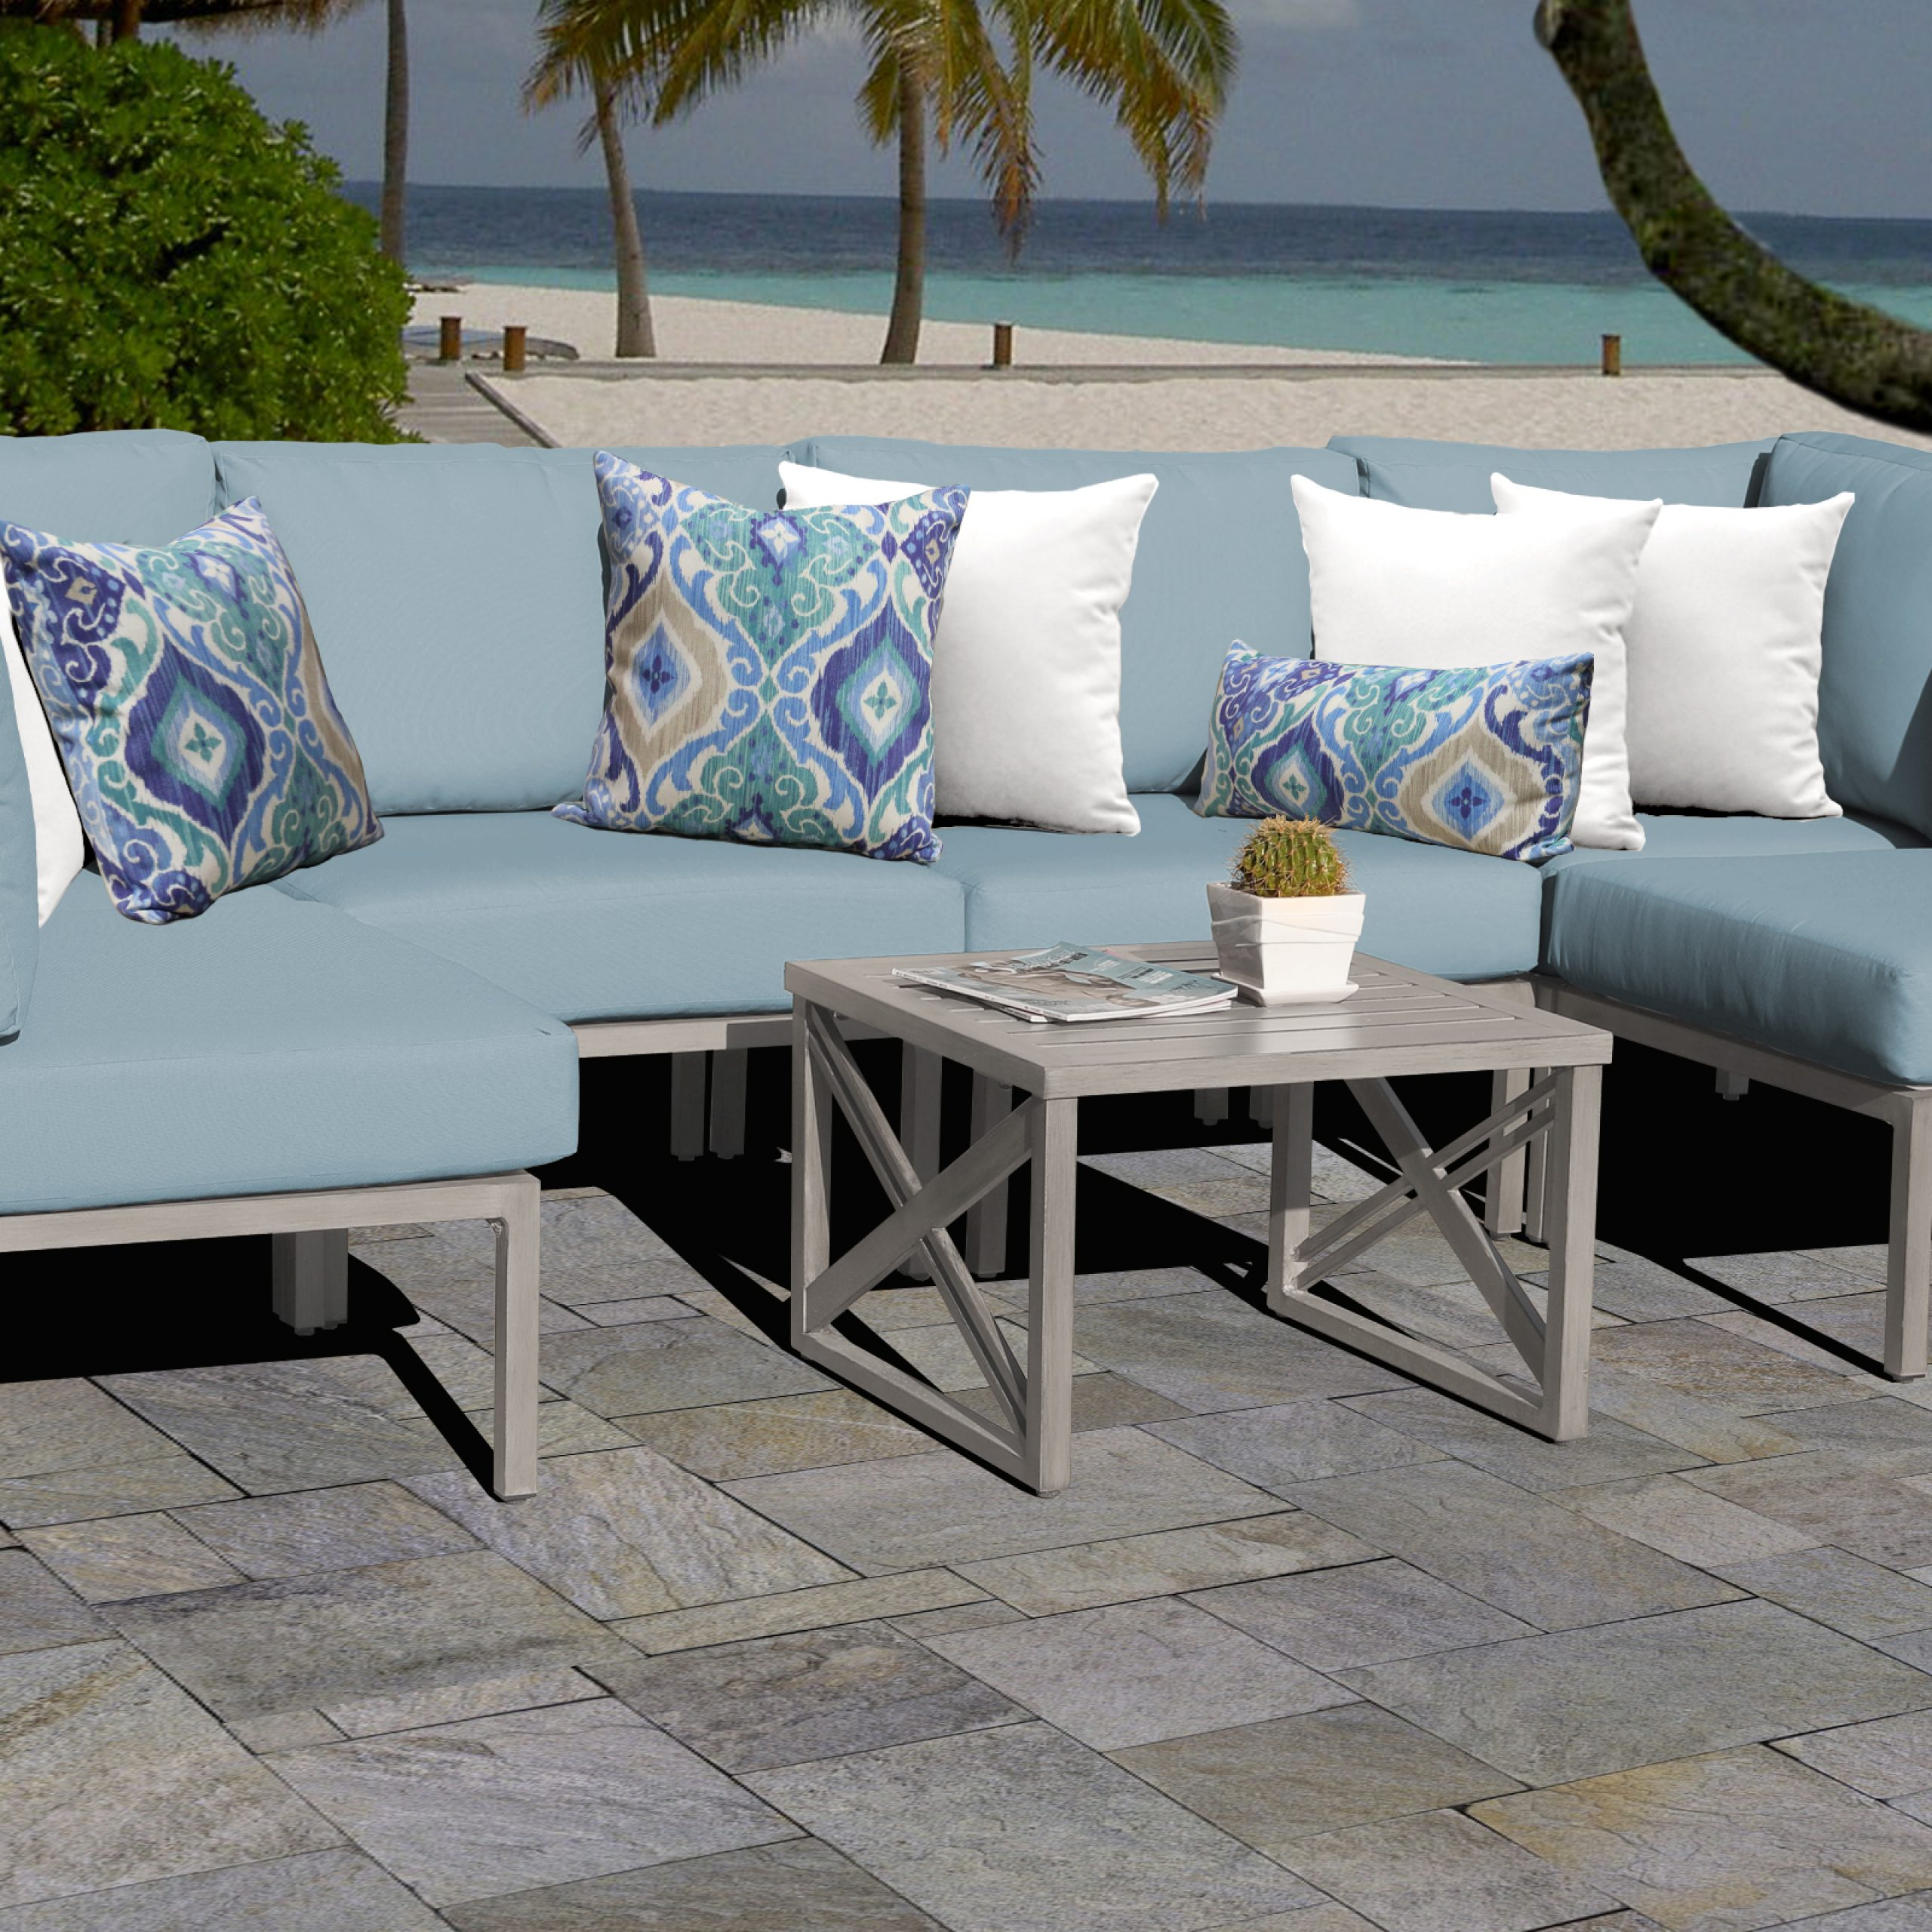 Carlisle Patio Sofas With Cushions With Regard To Most Popular Carlisle 7 Piece Outdoor Aluminum Patio Furniture Set 07A (View 10 of 25)